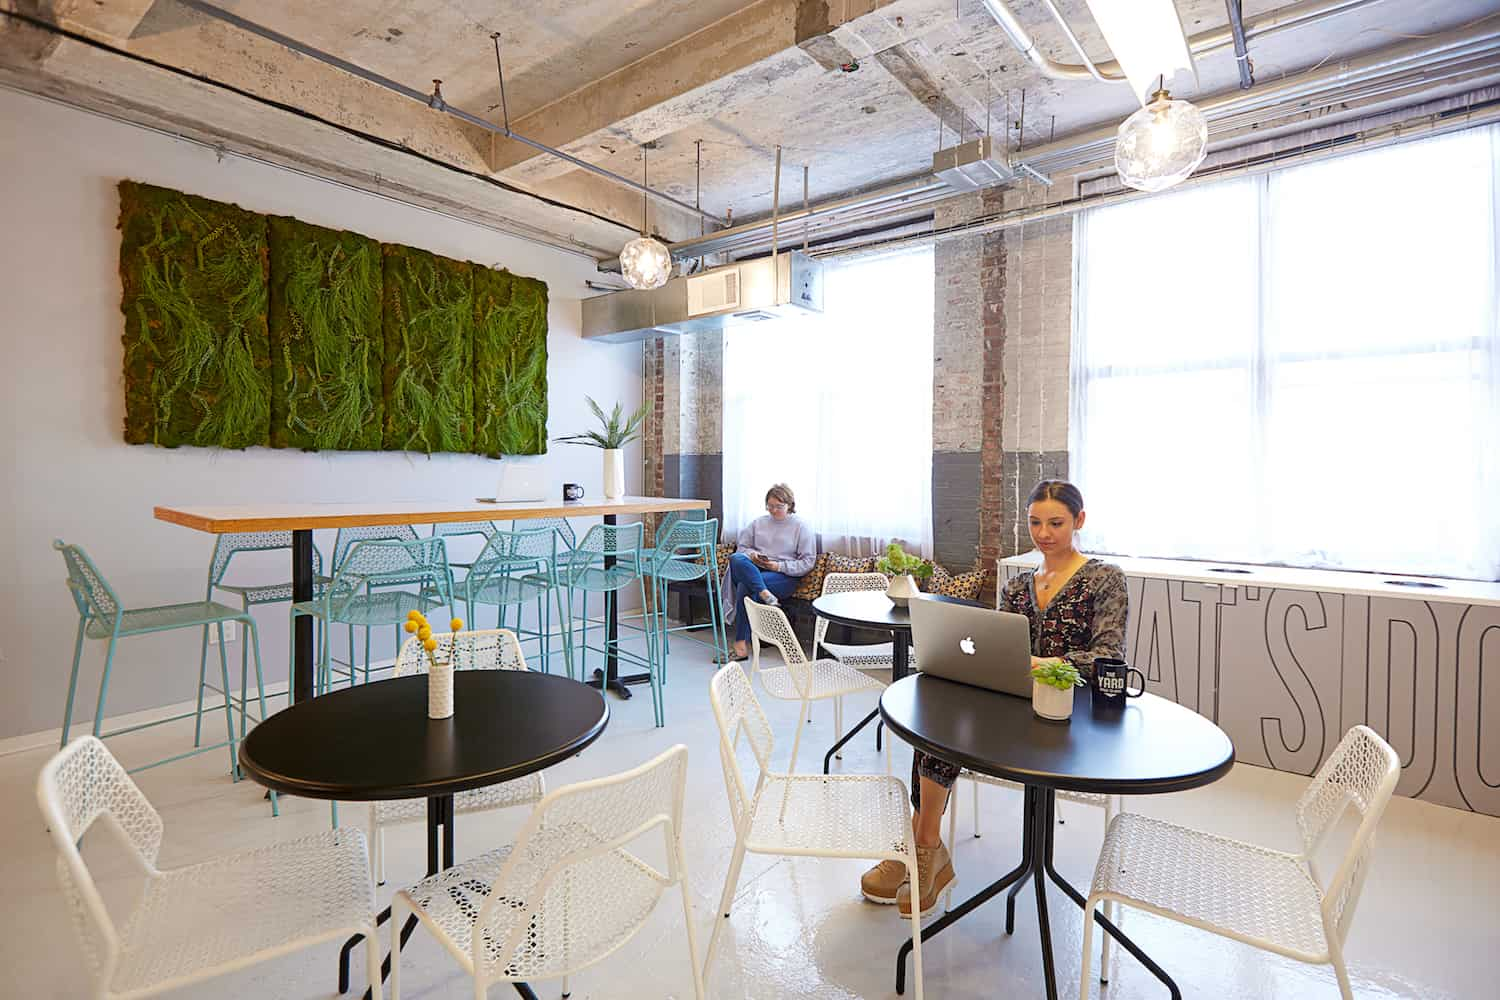 Office decor tips by sdac the yard space to work for The yard space to work